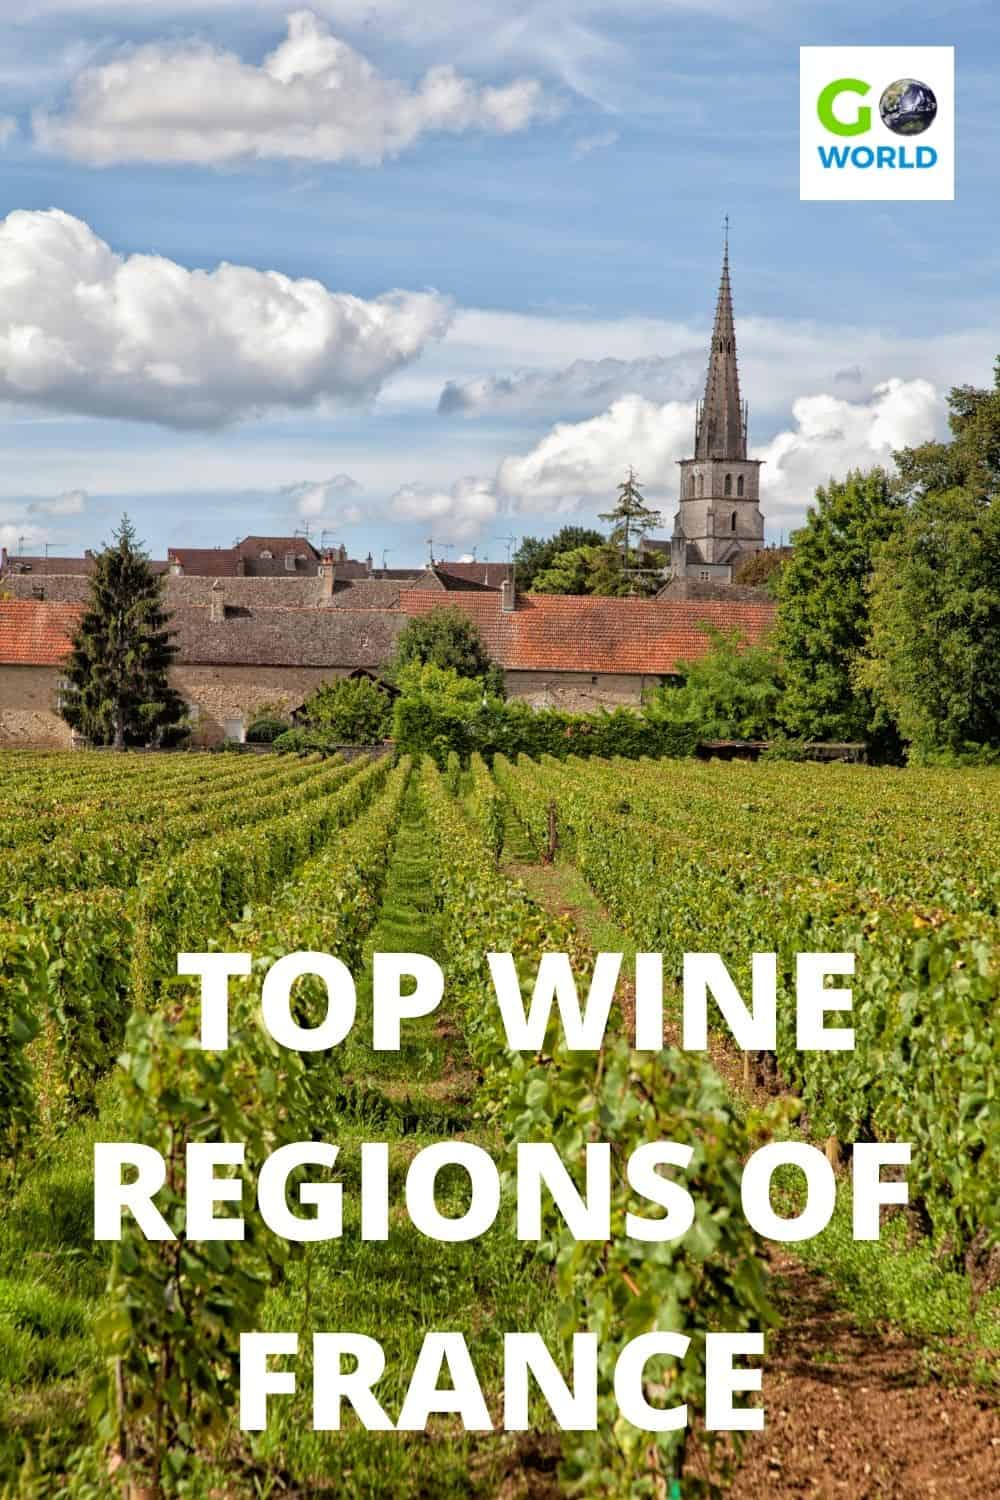 Explore the top wine regions of France. Full-bodied reds, crisp whites, subtle rosés & champagne are there for tasting with stunning scenery. #FranceWineRegions #FrenchWine #WineRegionsofFrance